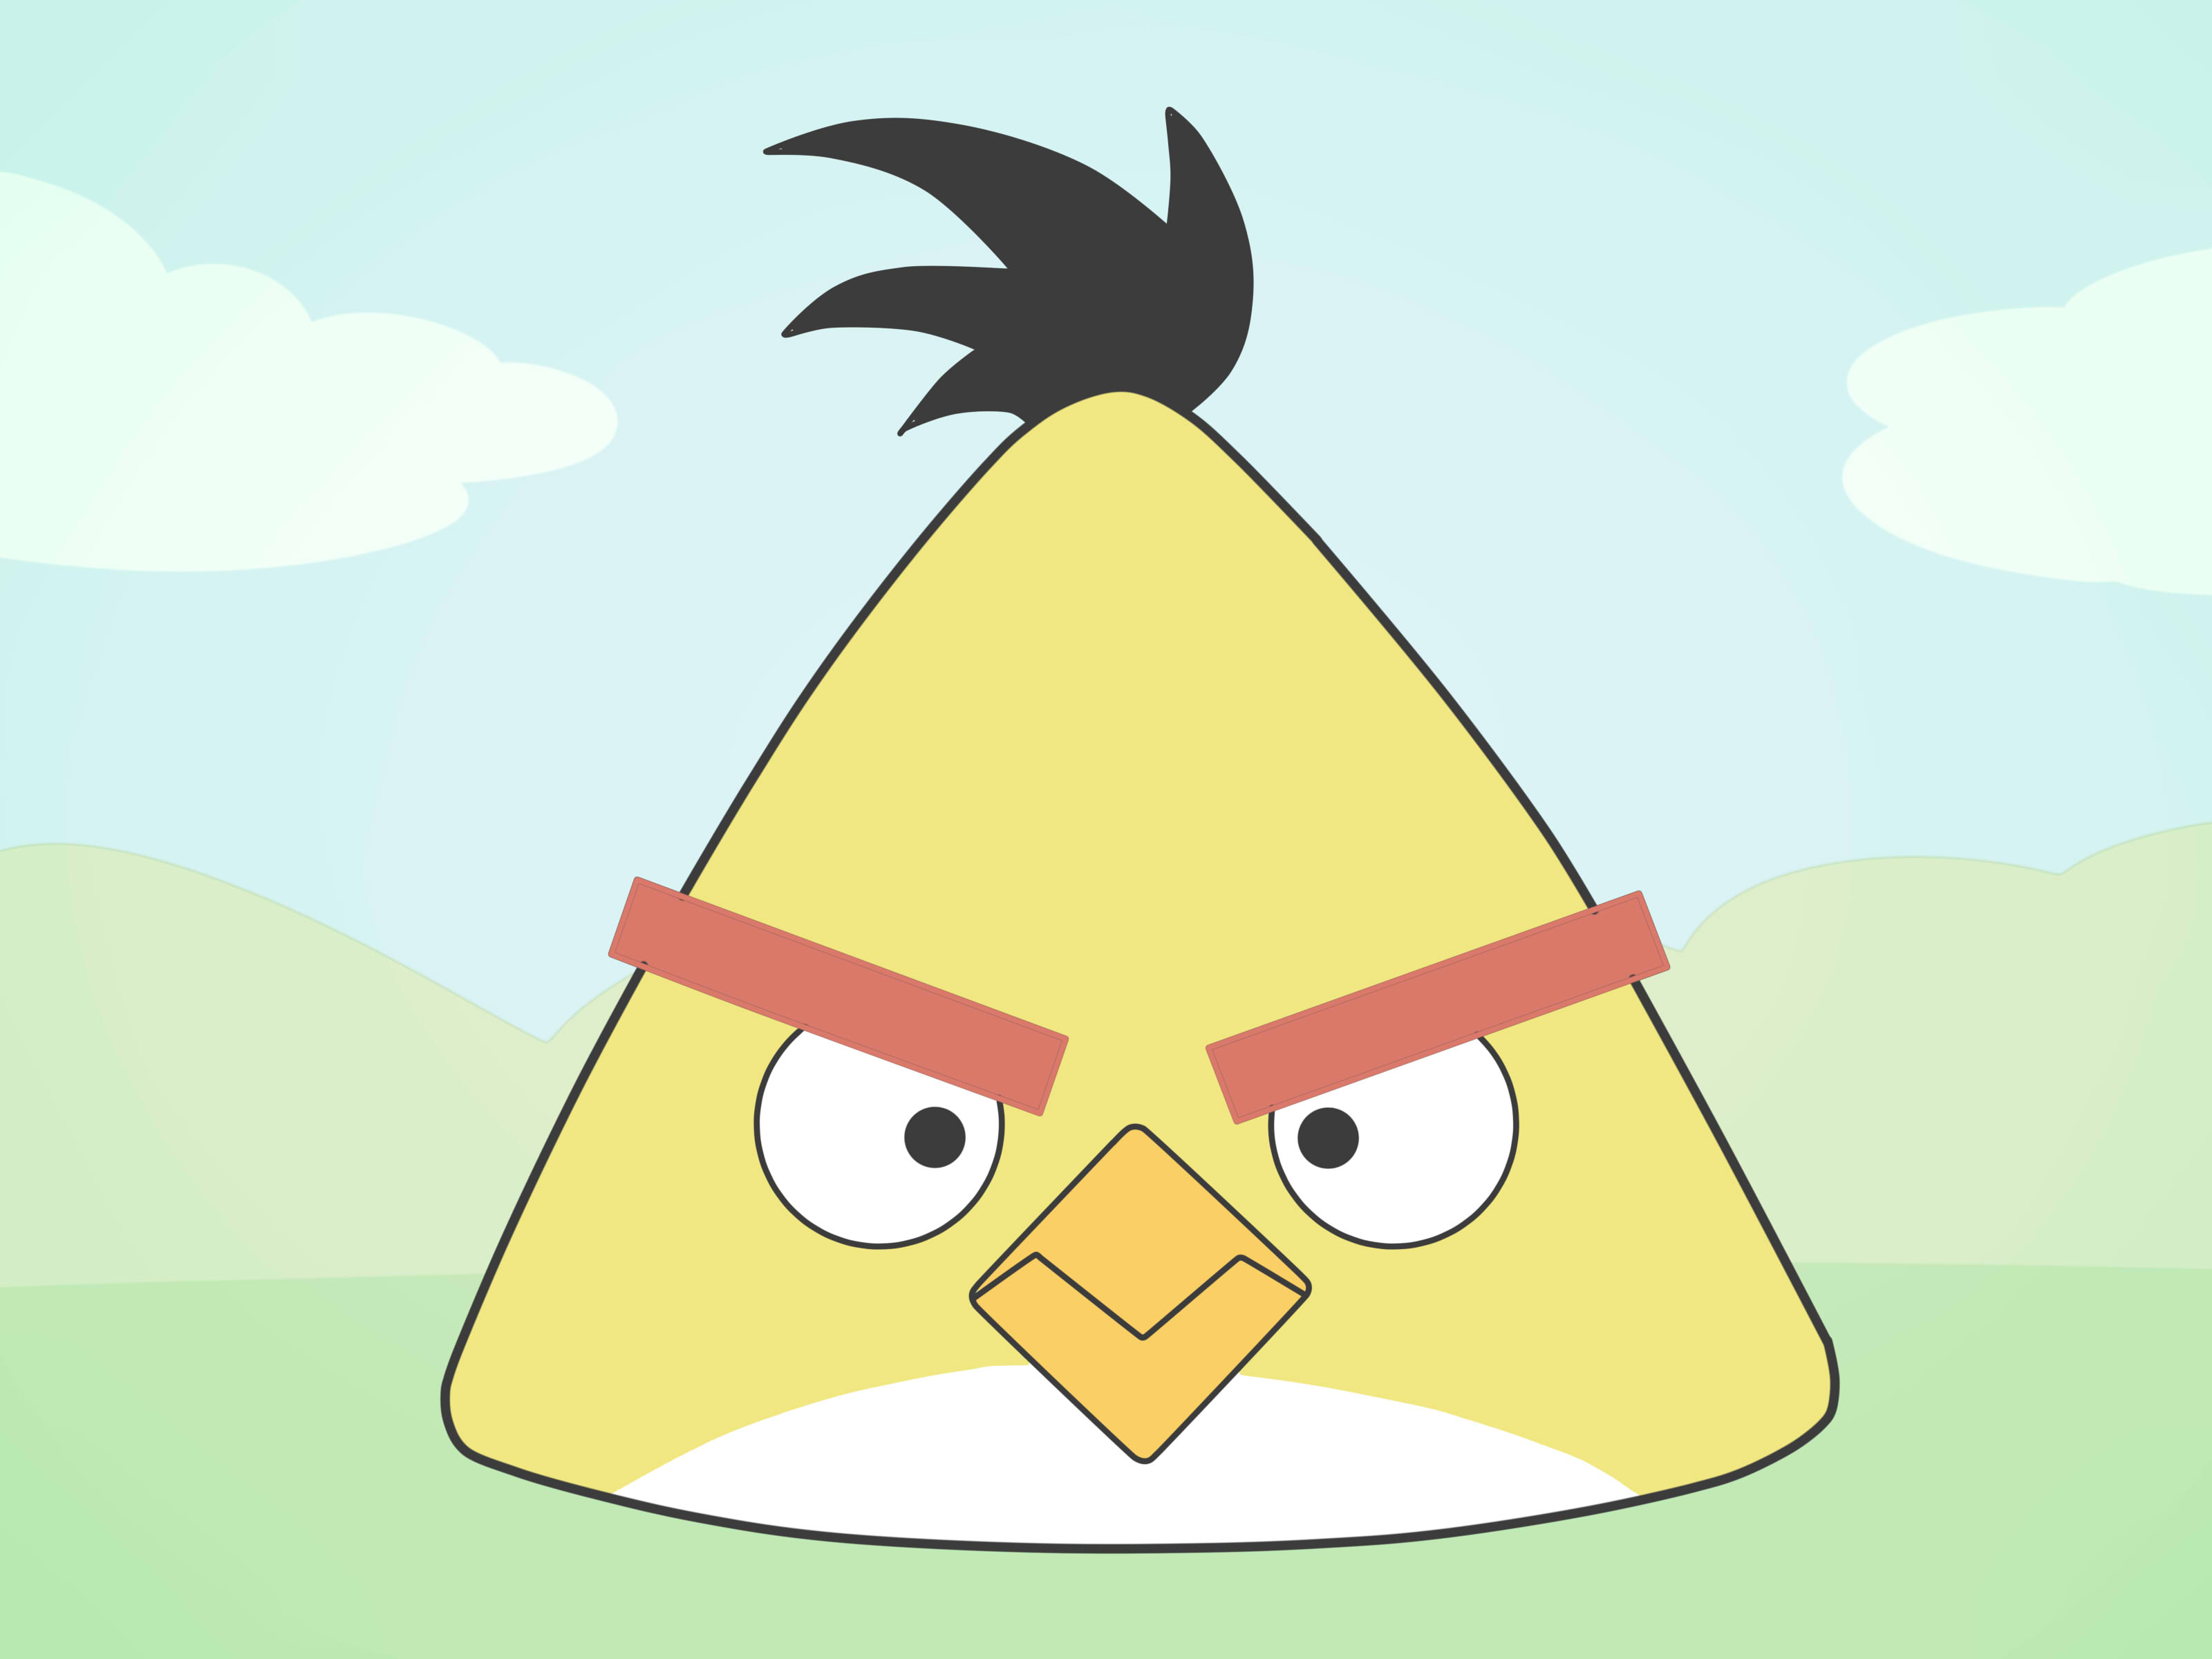 How To Draw An Angry Bird Emotions 15 Steps With Pictures